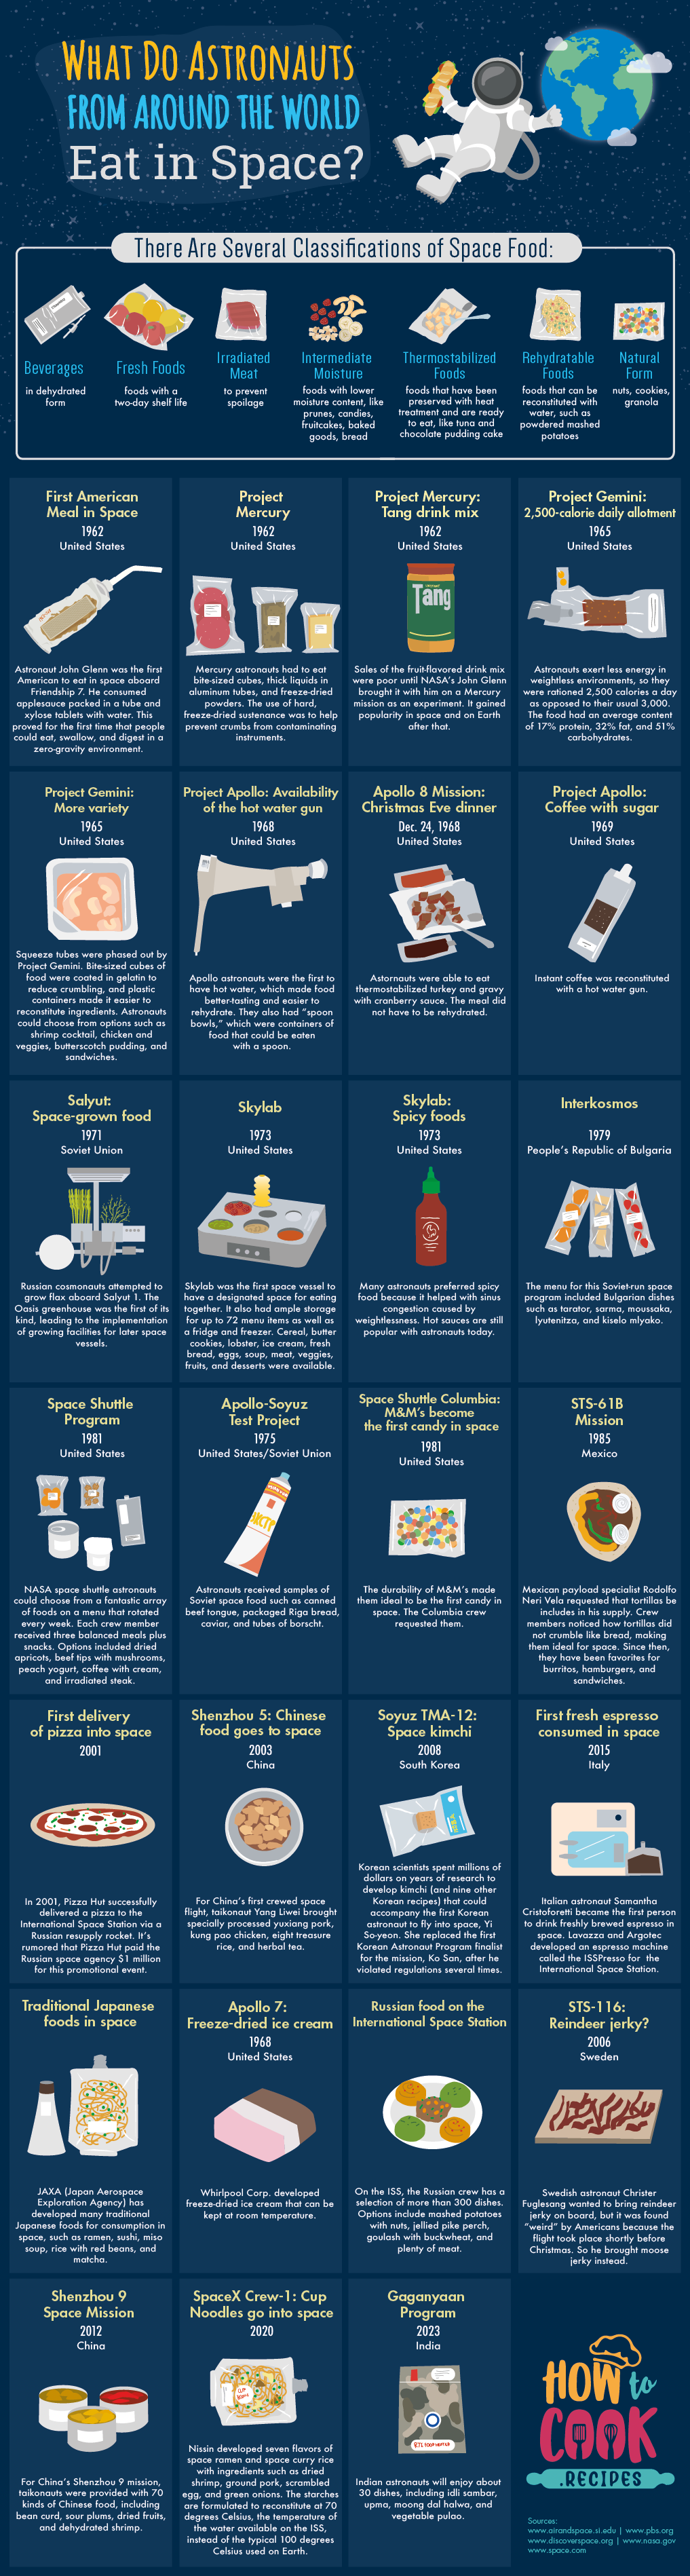 What Kind of Foods do Astronauts Eat in Space?